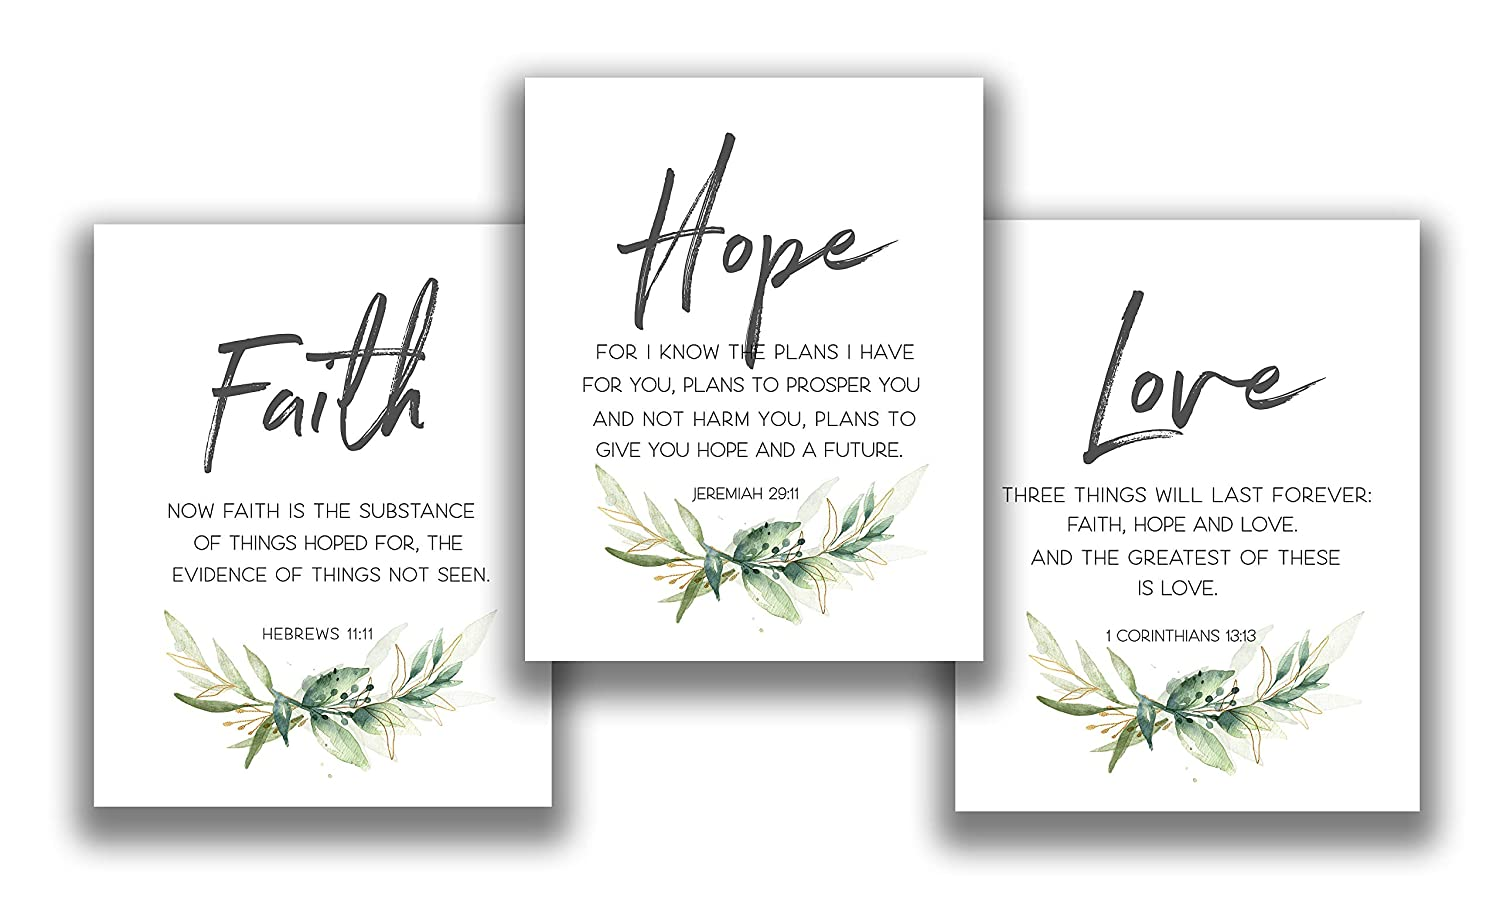 Faith, Hope & Love Bible Verse Inspirational Wall Art - Set of 3-11x14 UNFRAMED Prints - A Great Christian Religious Decor Gift. Quotes from Jeremiah 29:11, Corinthians 13:13 and Hebrews 11:11